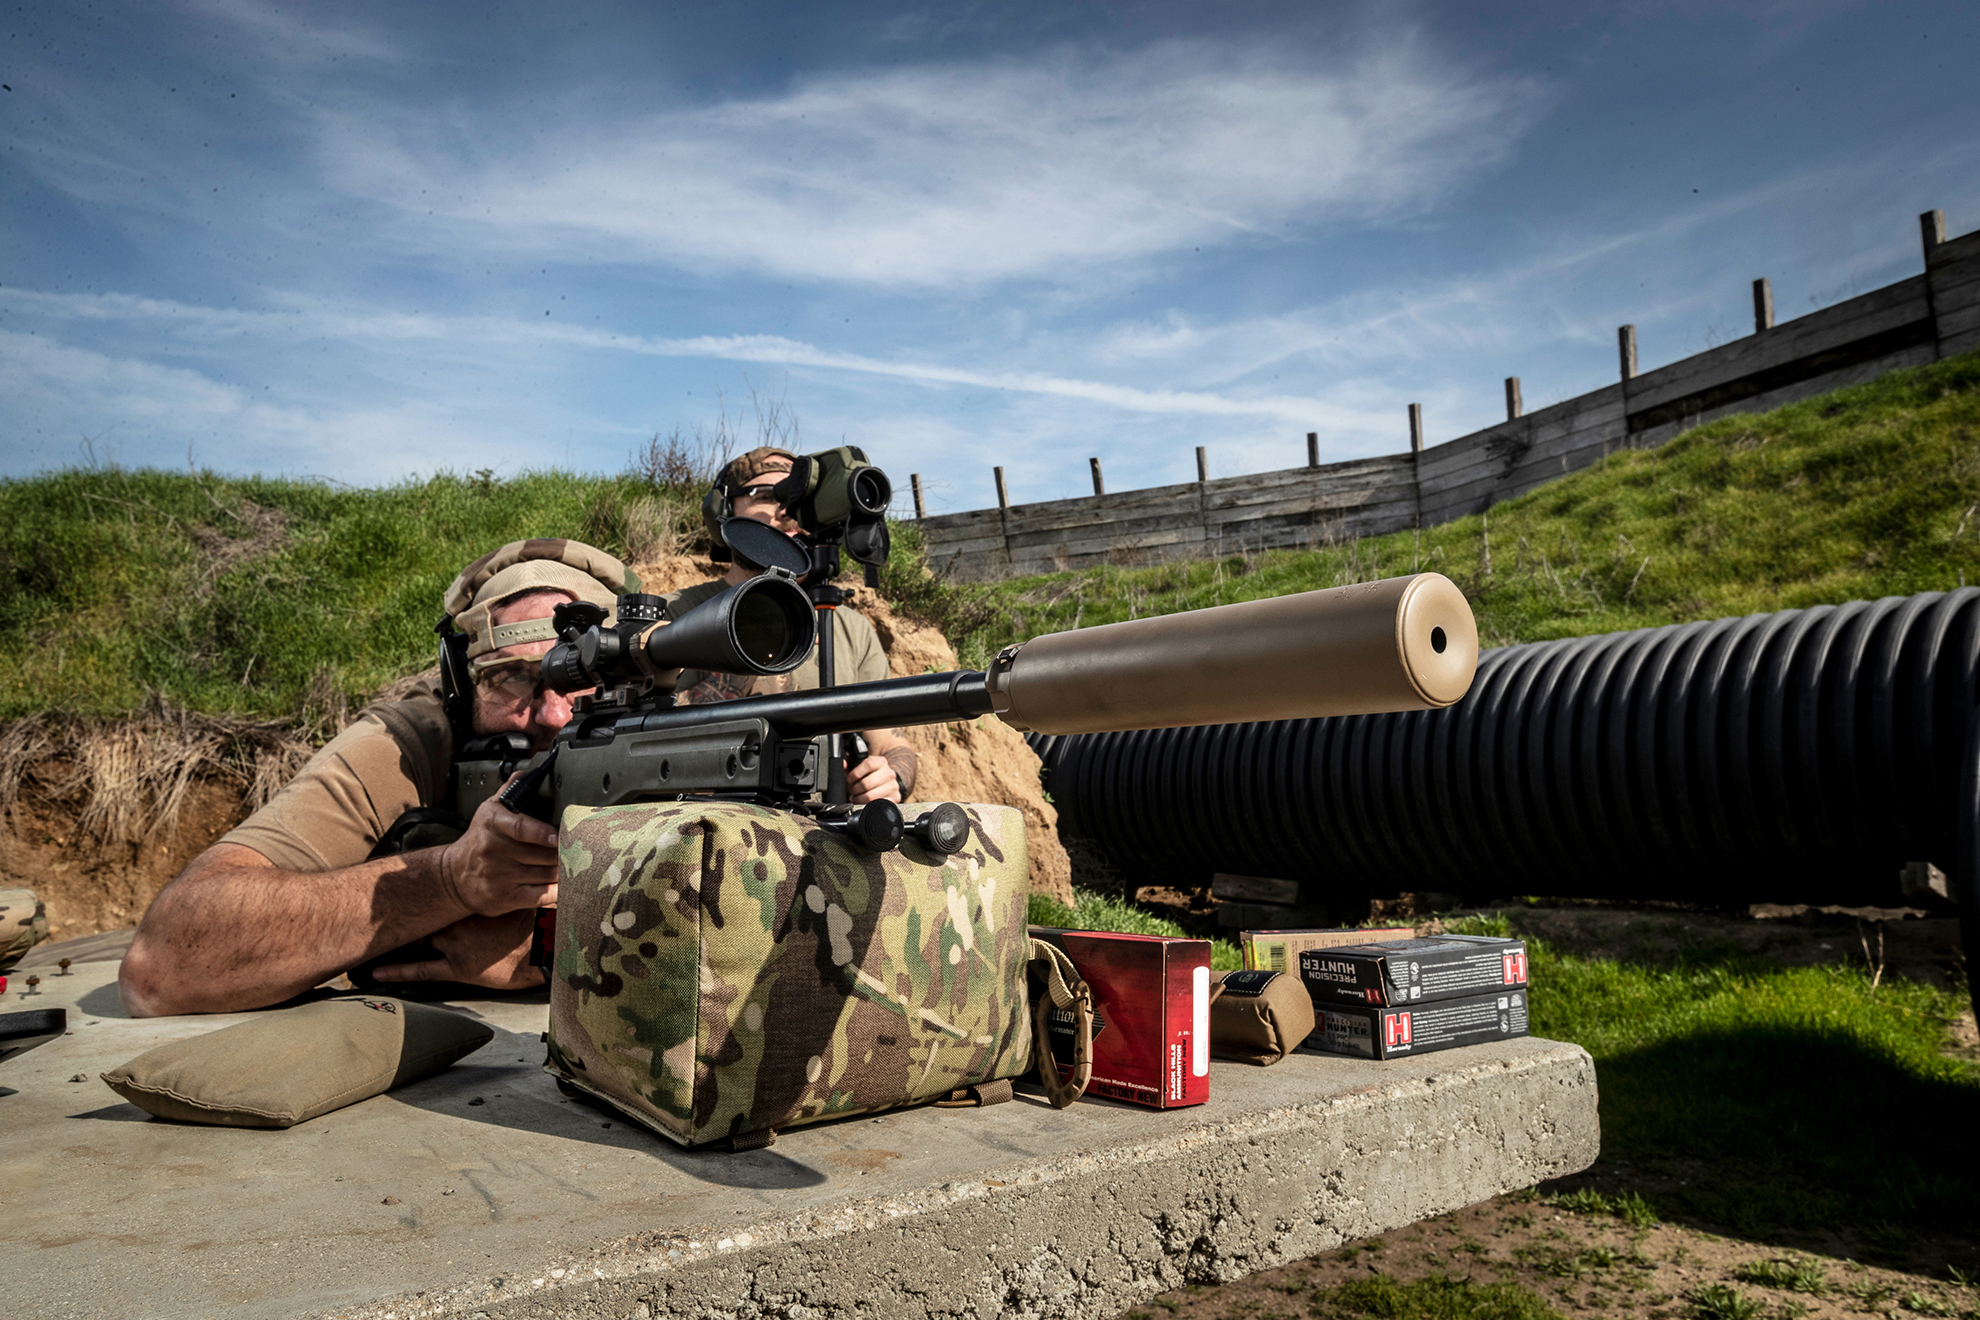 New SureFire SOCOM408-ELR SuppressorThe Lightweight Ti Suppressor for .408 CheyTac Long-Range Shooters